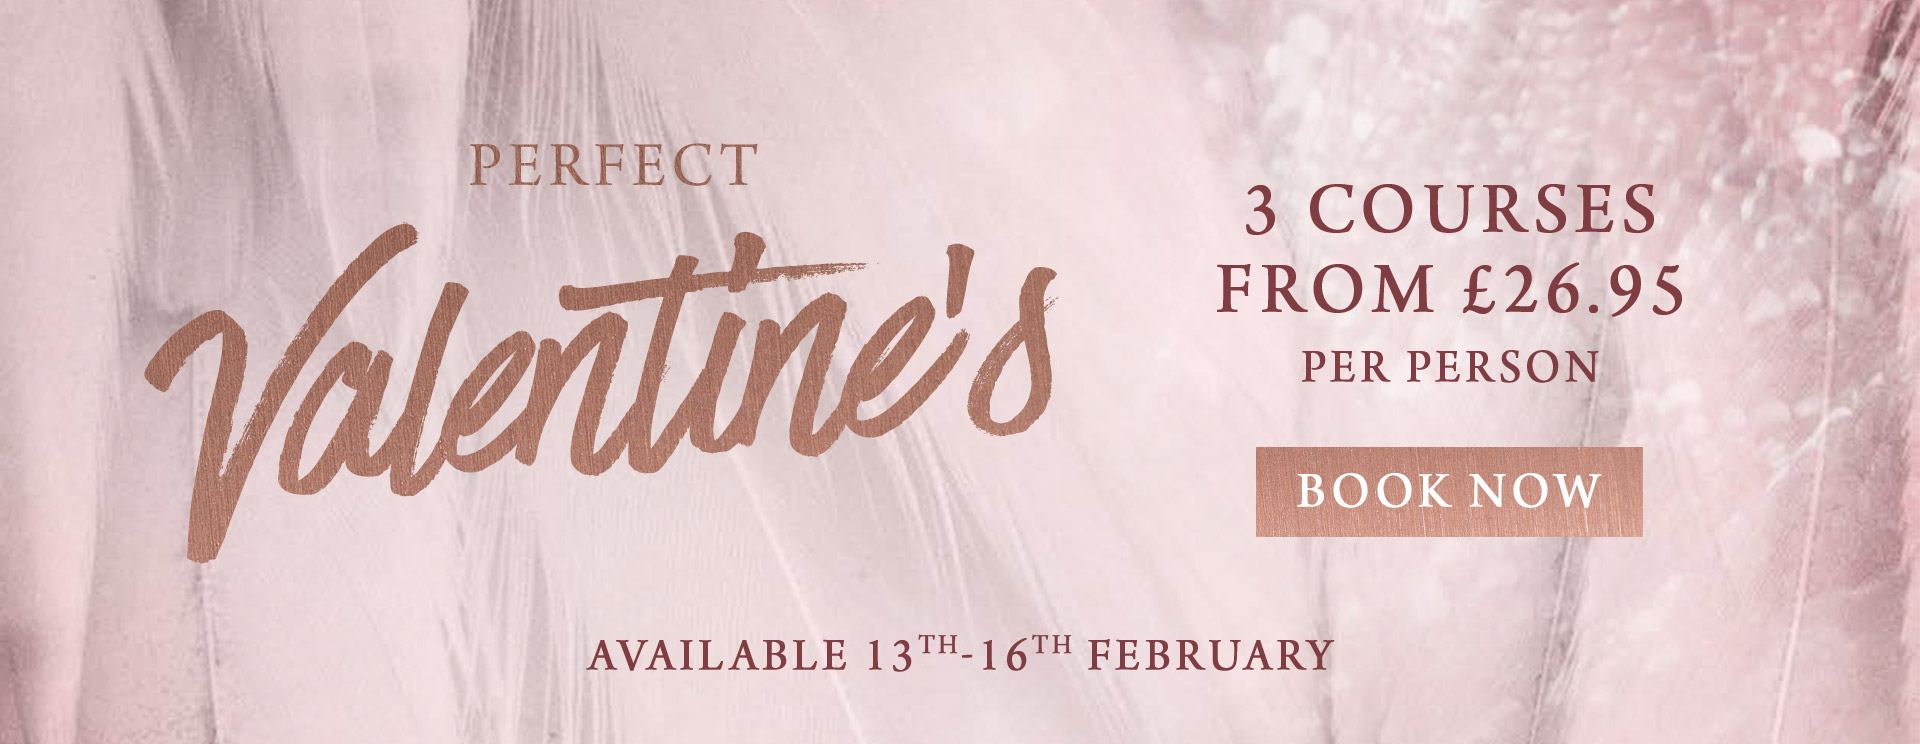 Valentines at The Langton